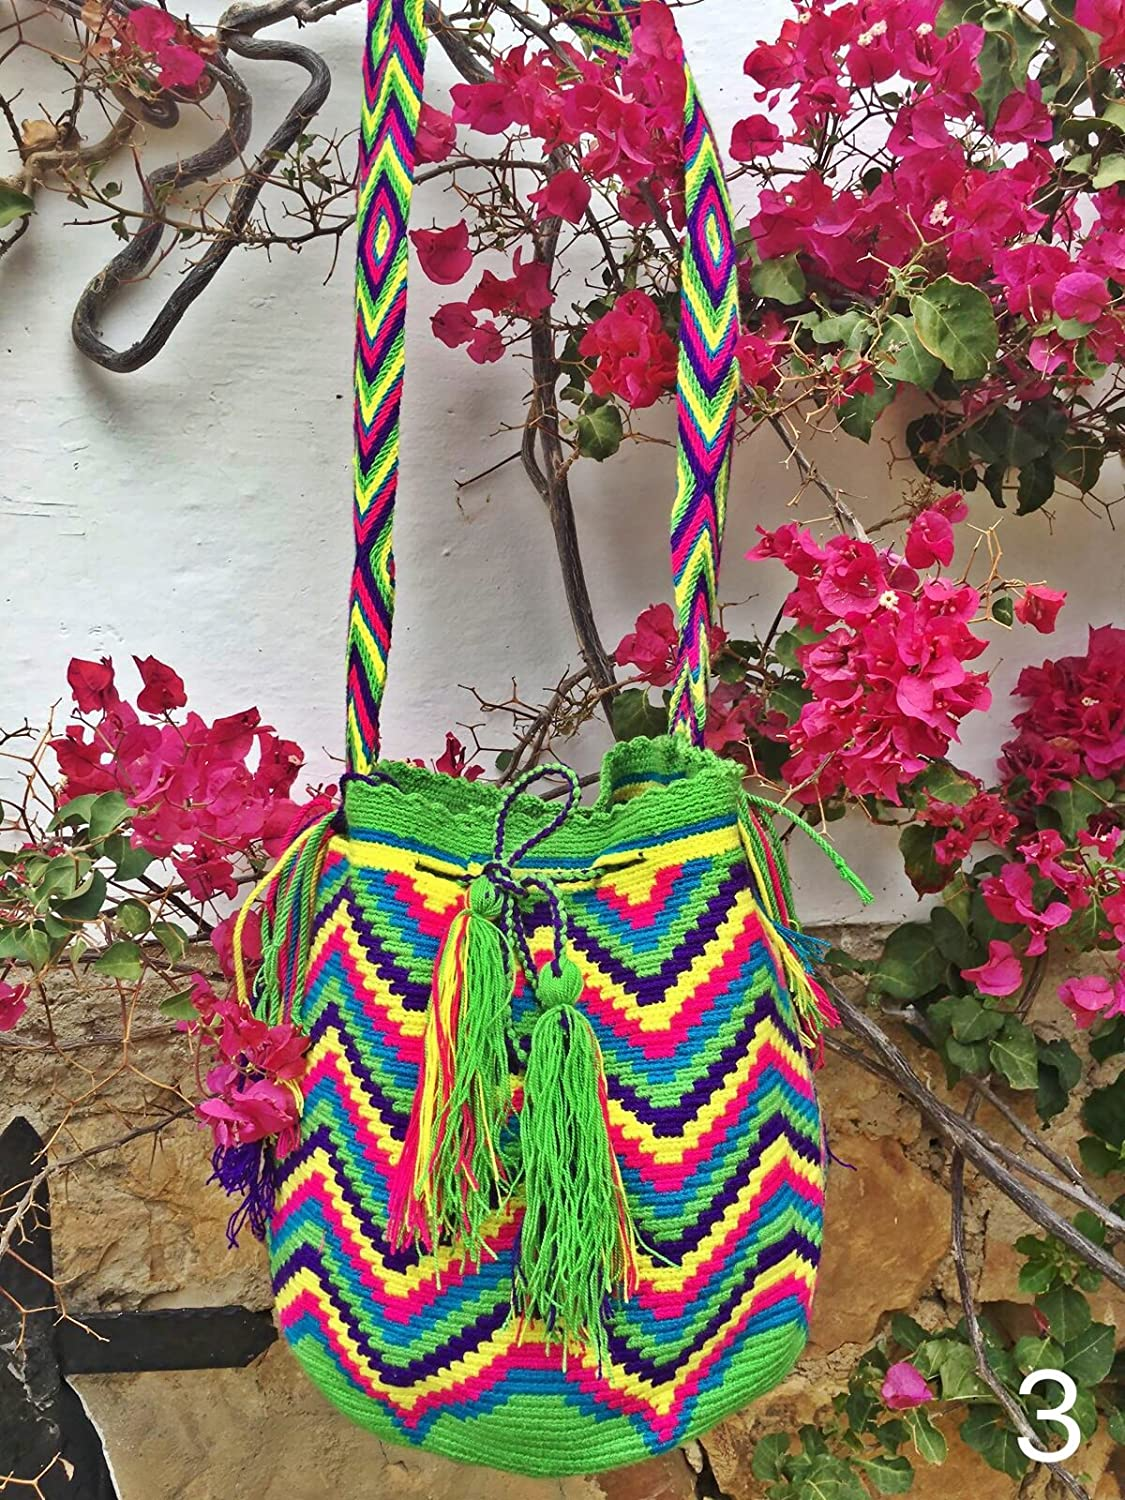 Amazon.com : Wayuu Mochila - Hand Woven - Colombian Bag - Shoulder bag : Everything Else